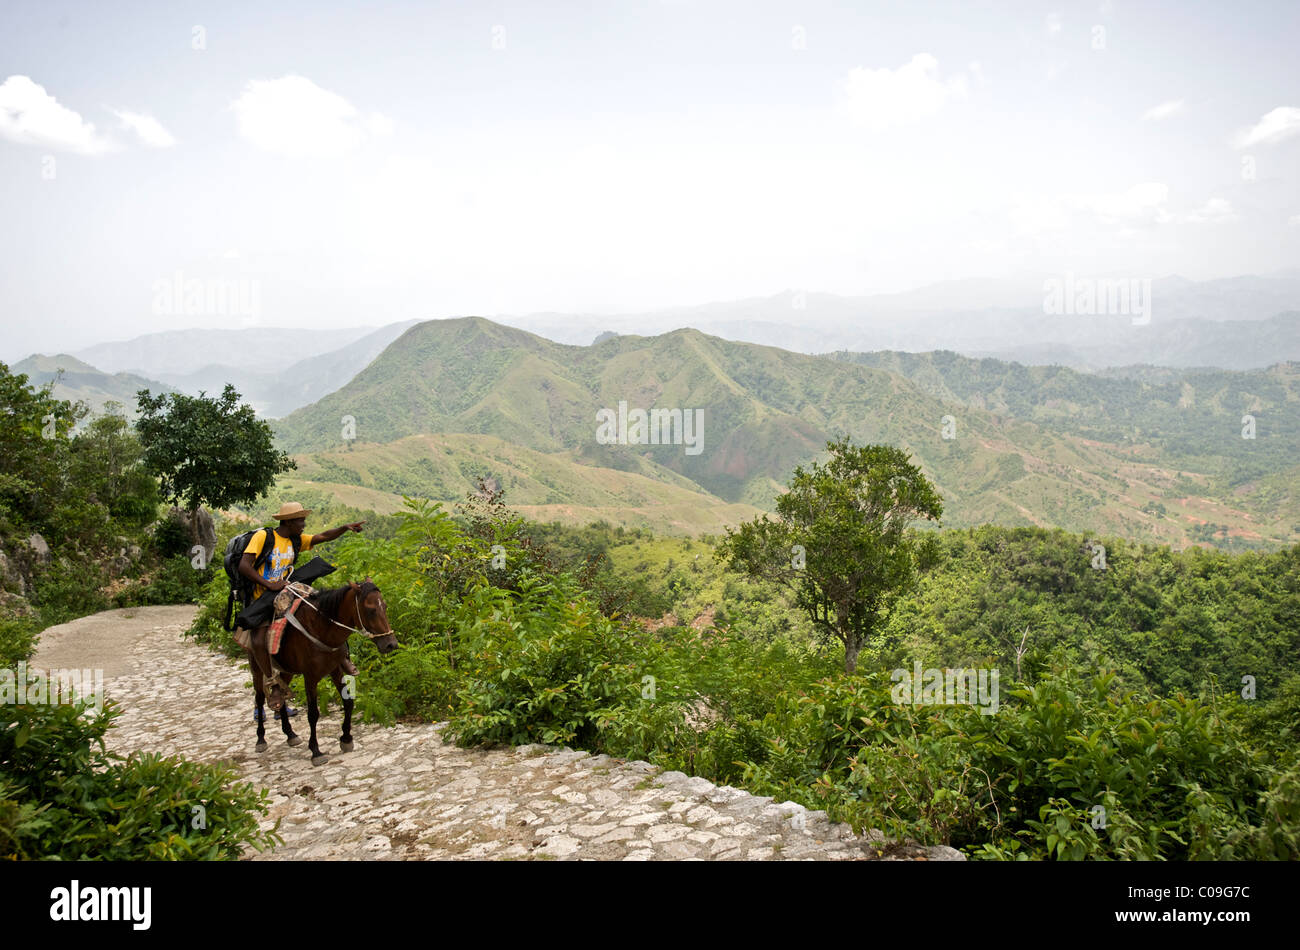 A man ascends a miles long road on horseback while making his way to the Citadel in northern Haiti. Stock Photo